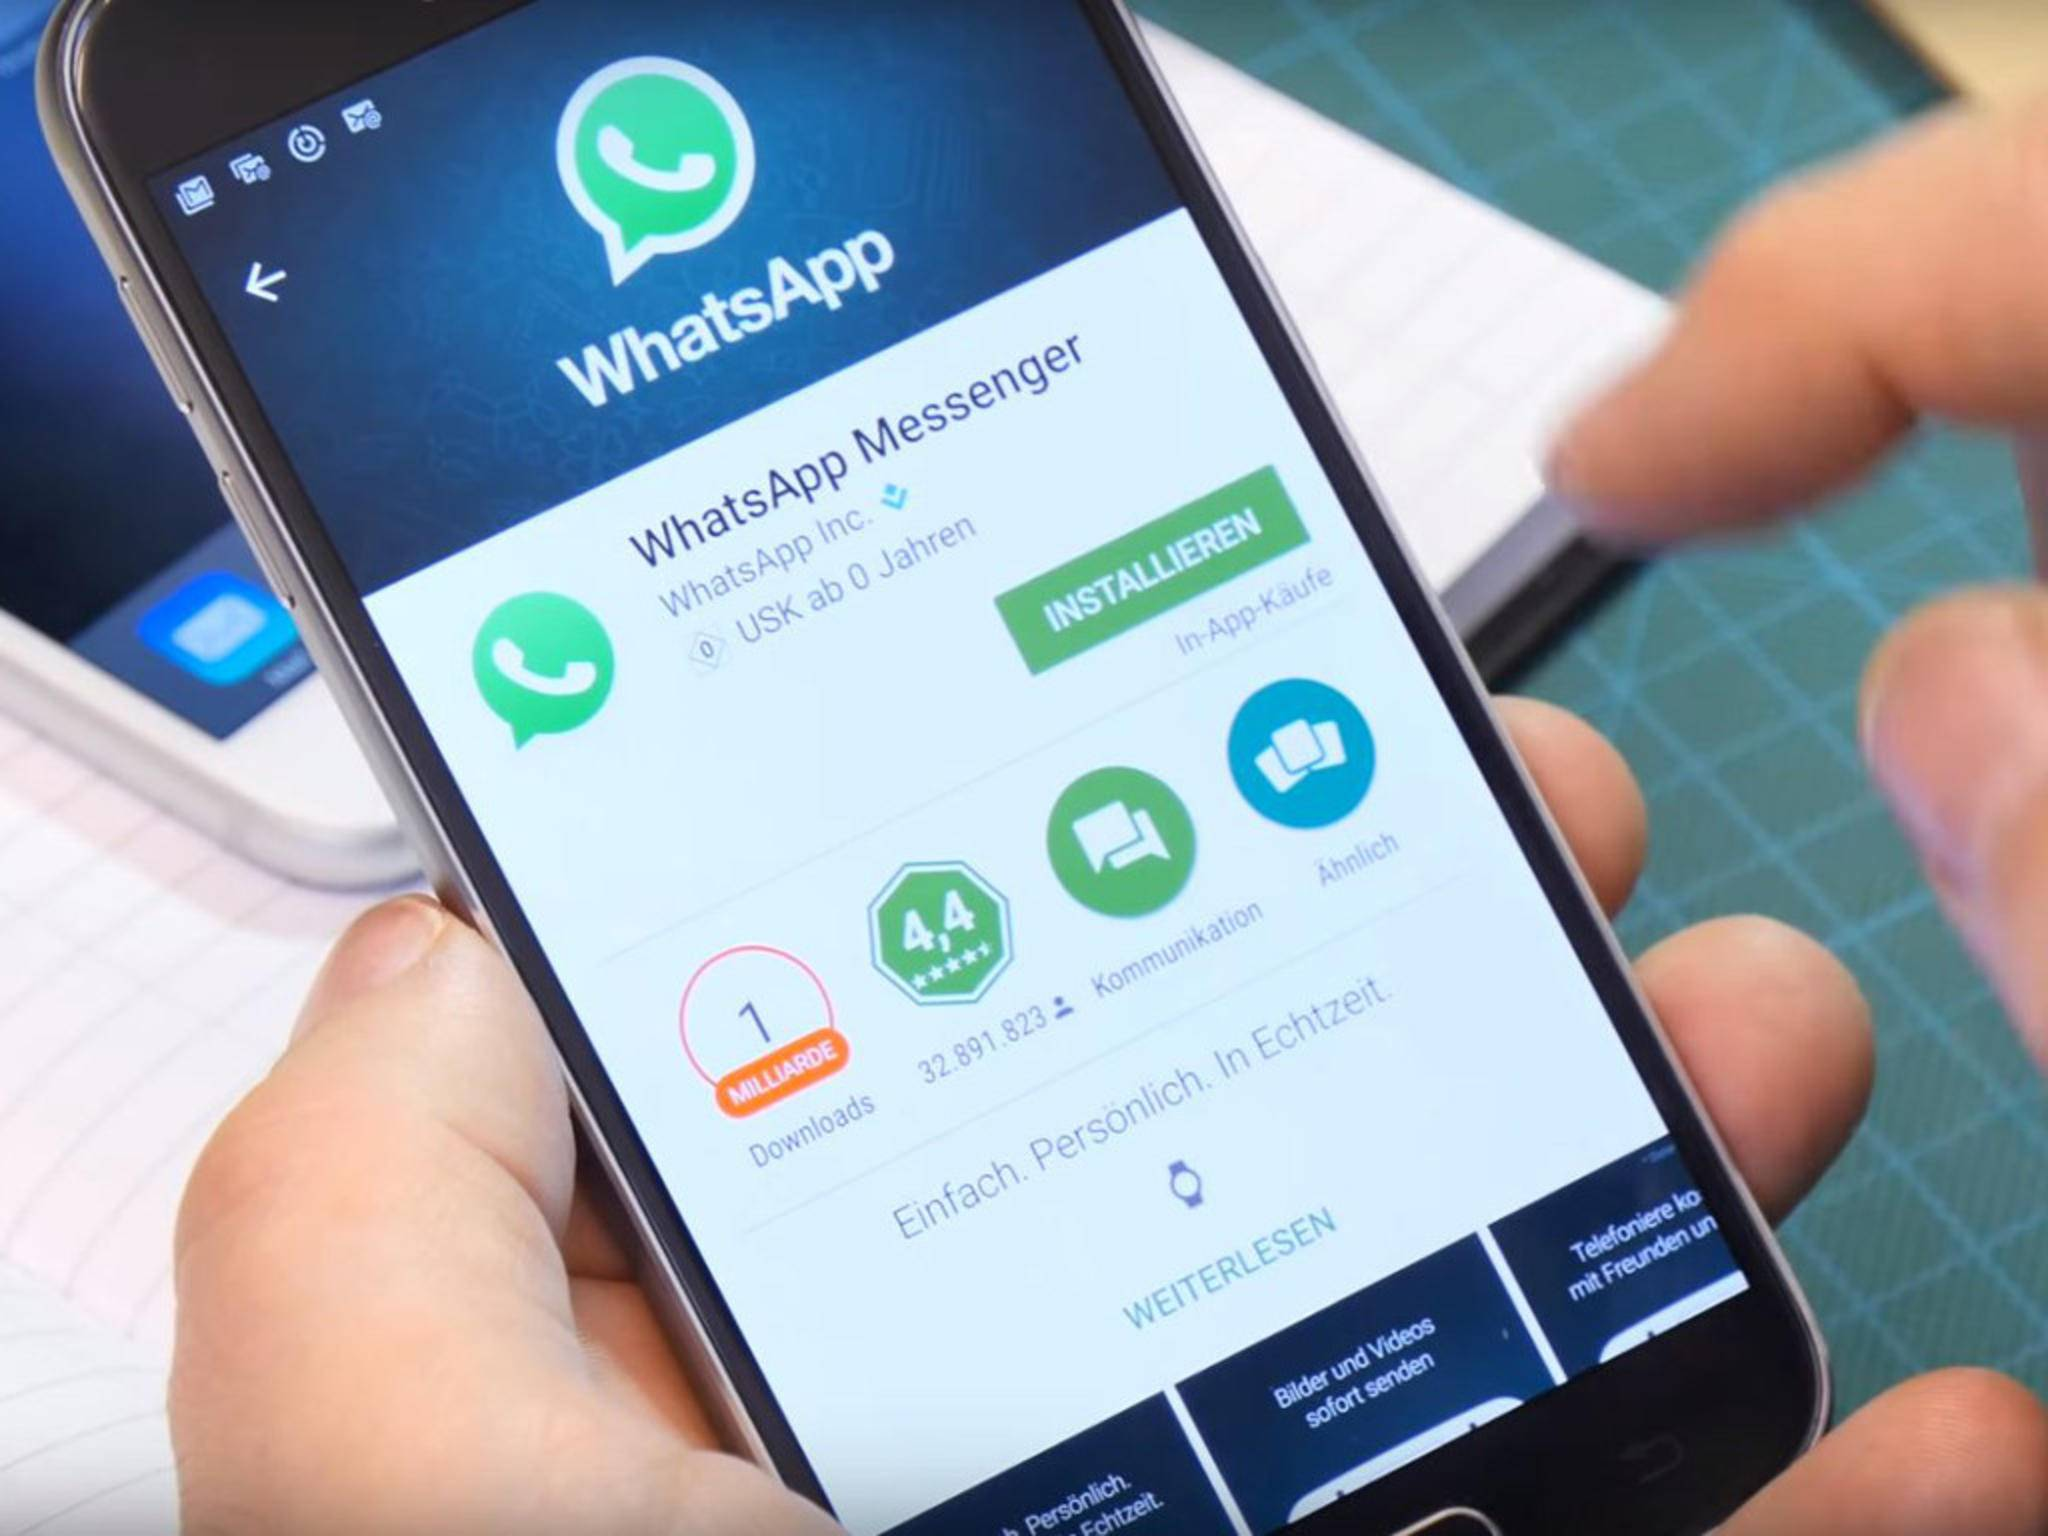 Die neue Android-Beta-Version von WhatsApp bringt interessante Features.